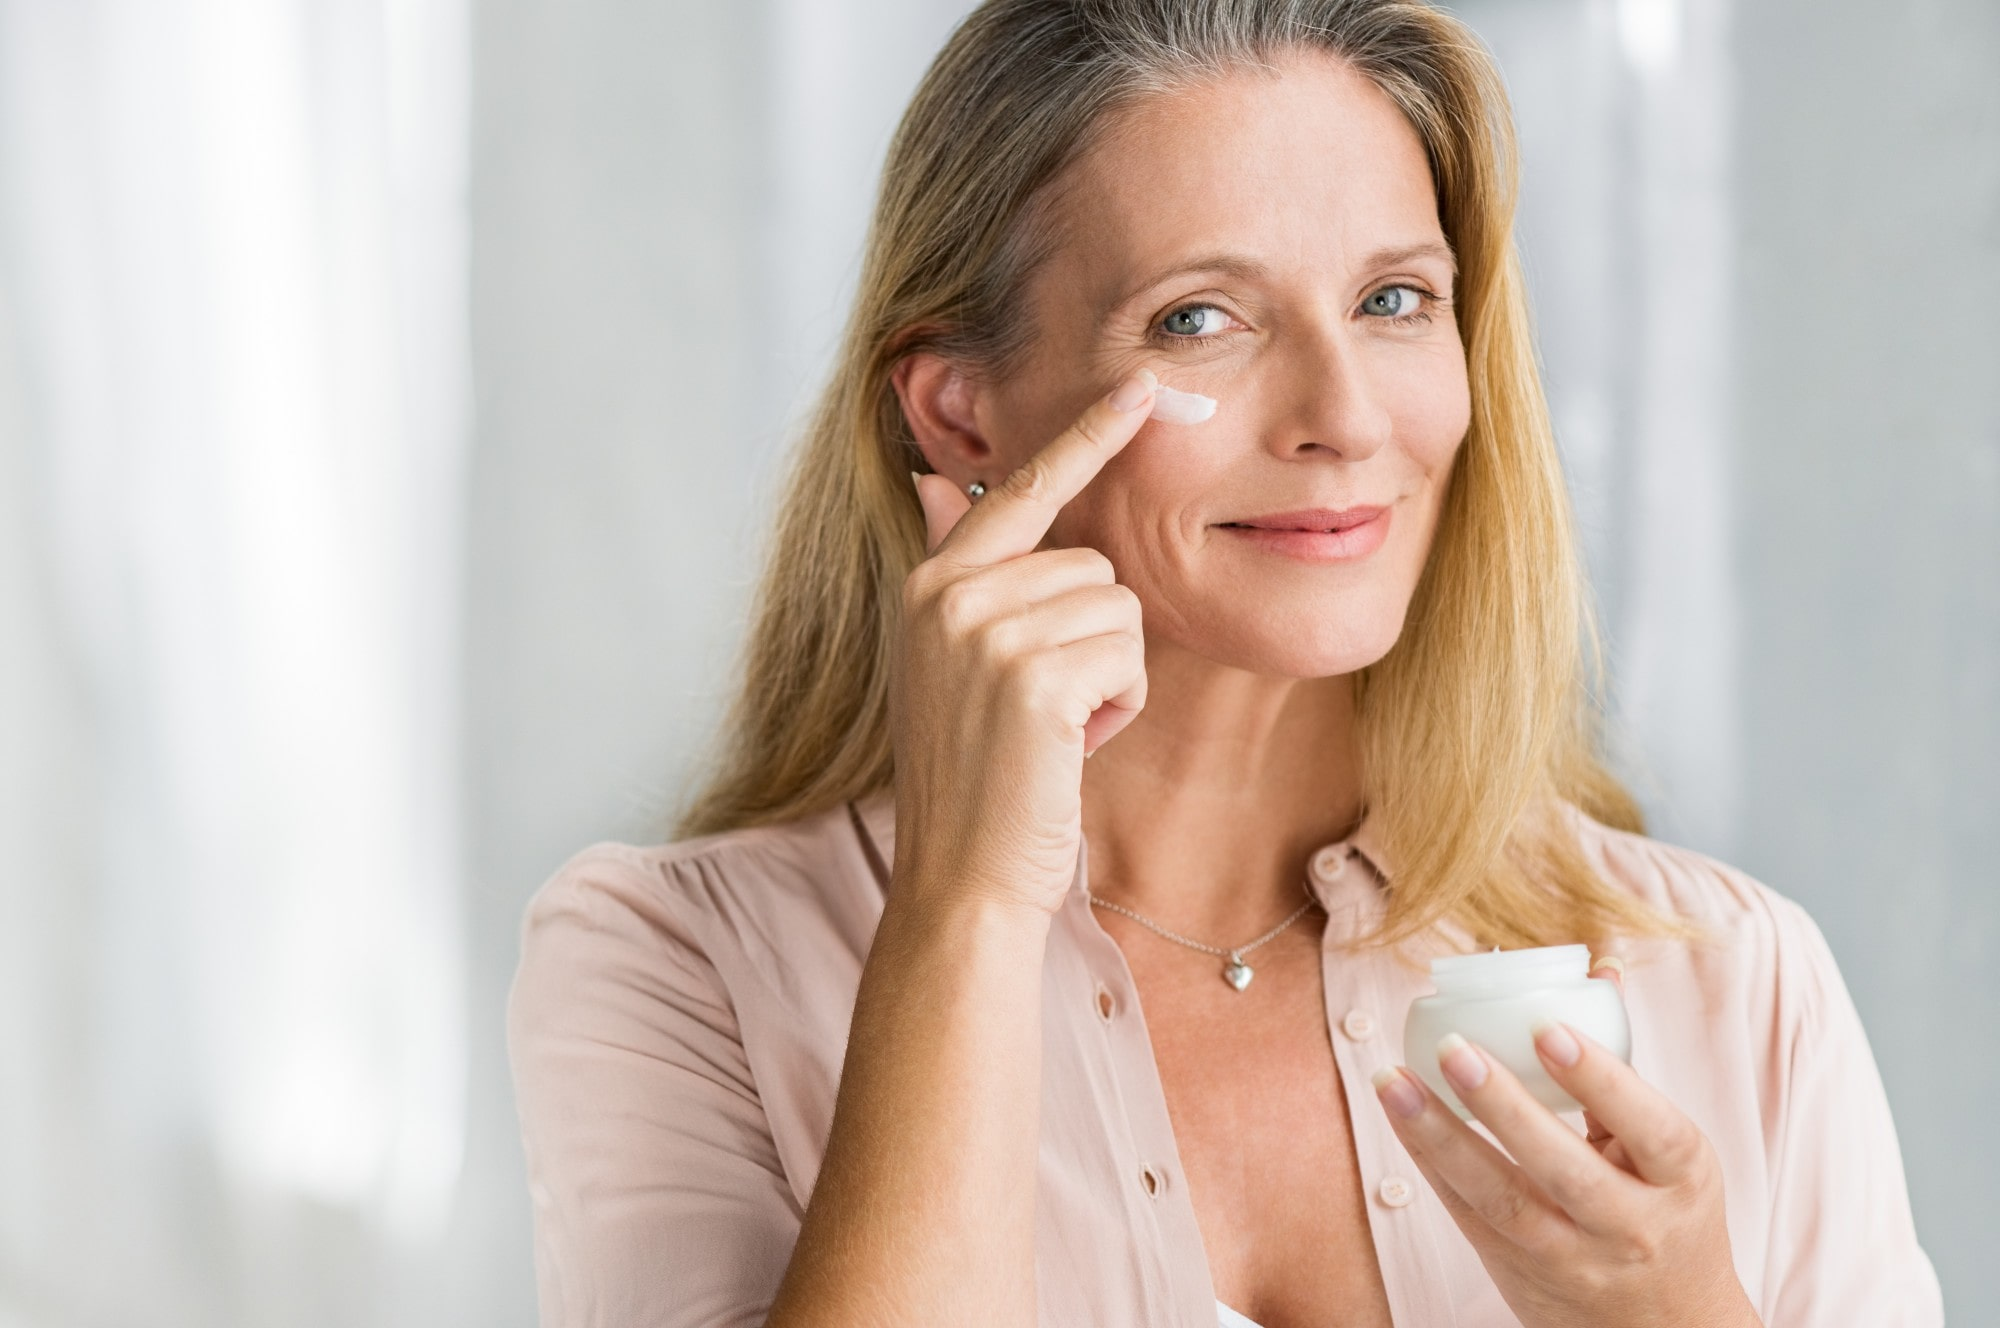 mature woman applying anti-ageing product to face.